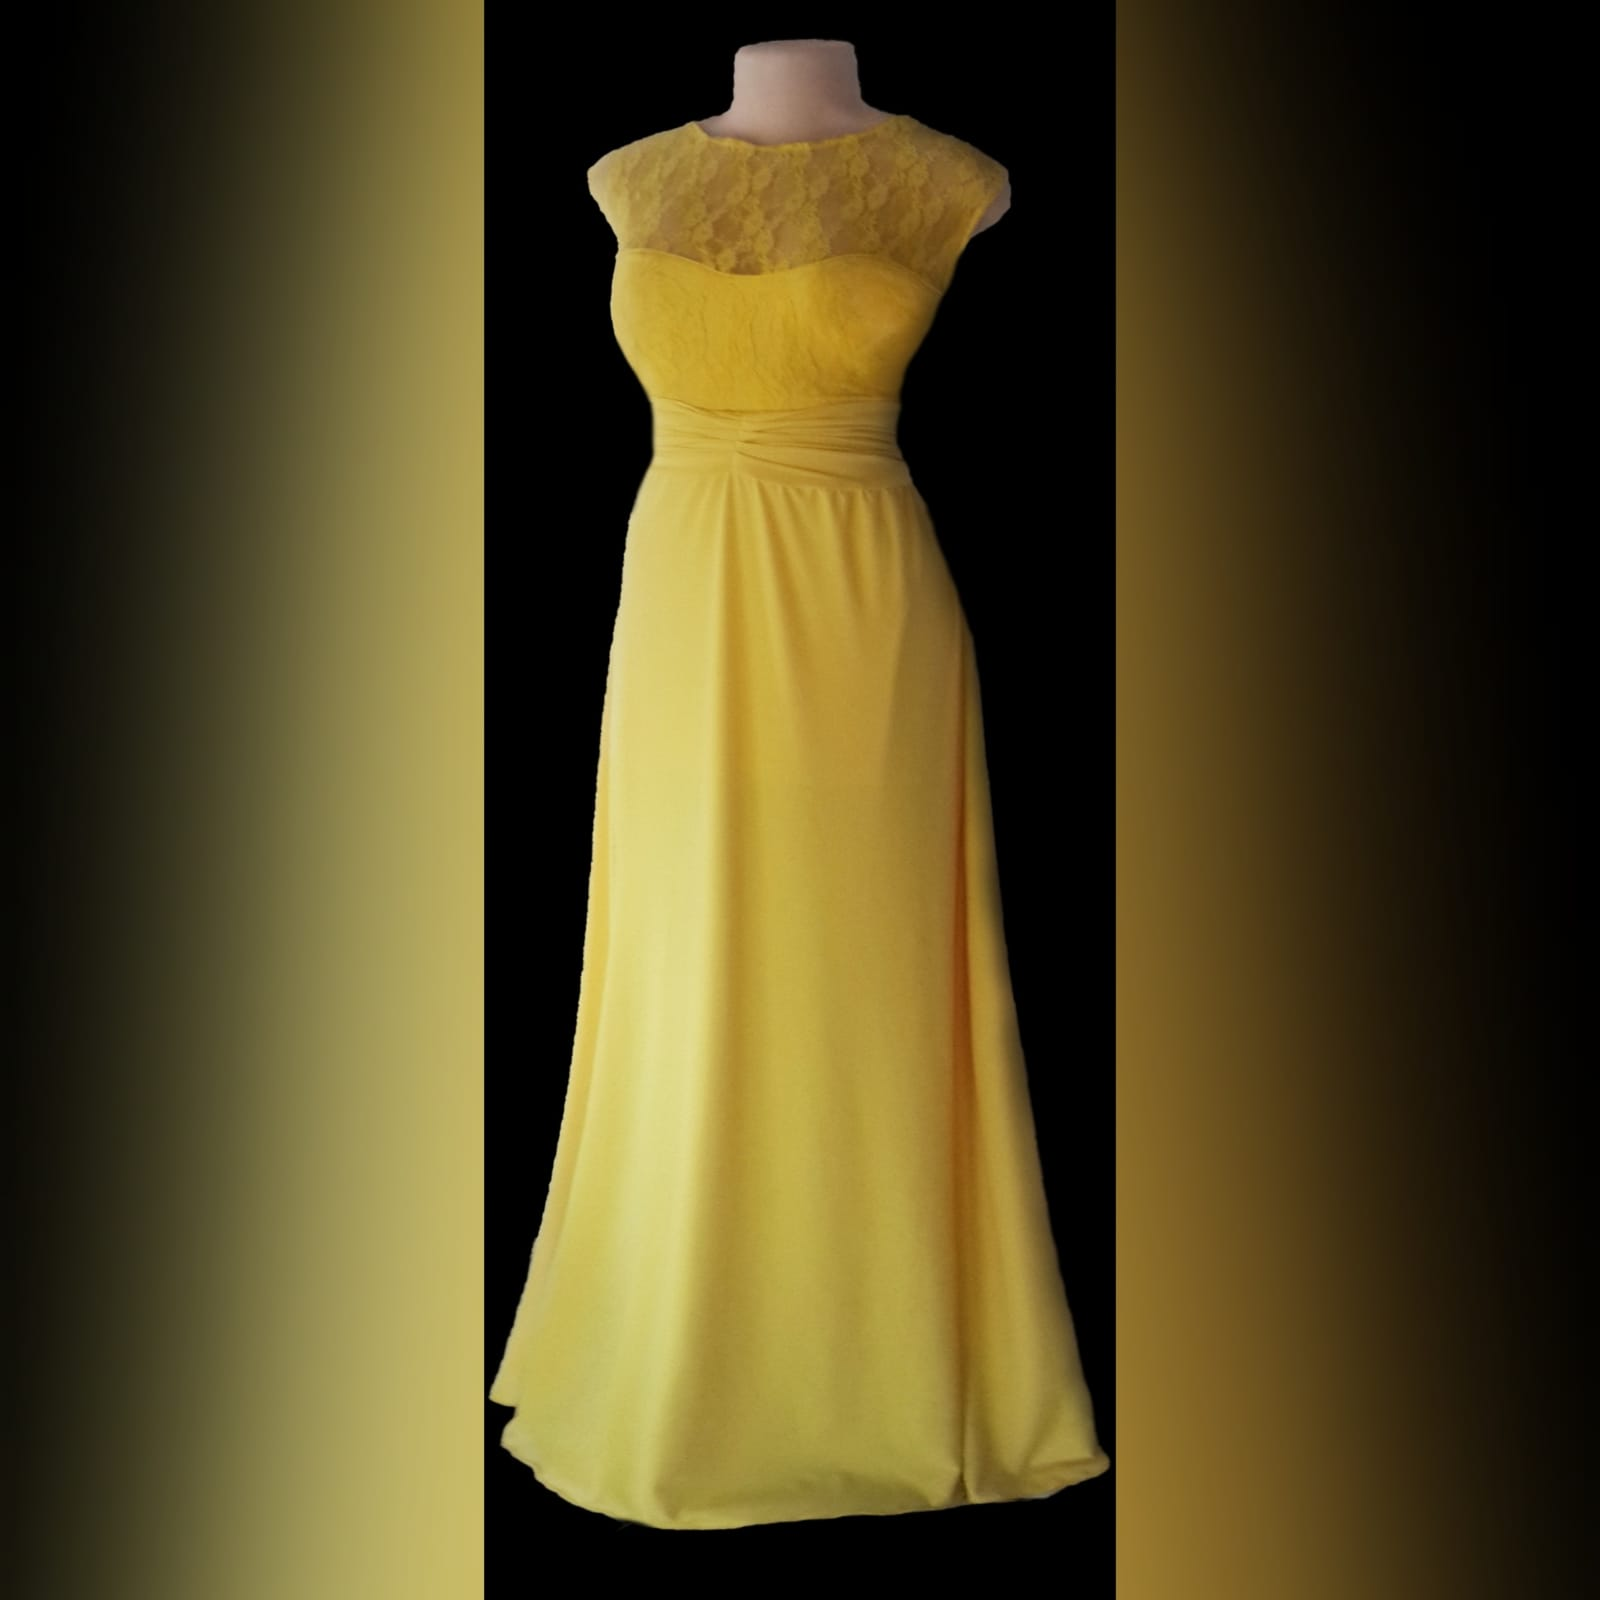 Yellow long evening dress with a lace bodice 4 yellow long evening dress with a lace bodice, rouged belt and a slit. Flowy.